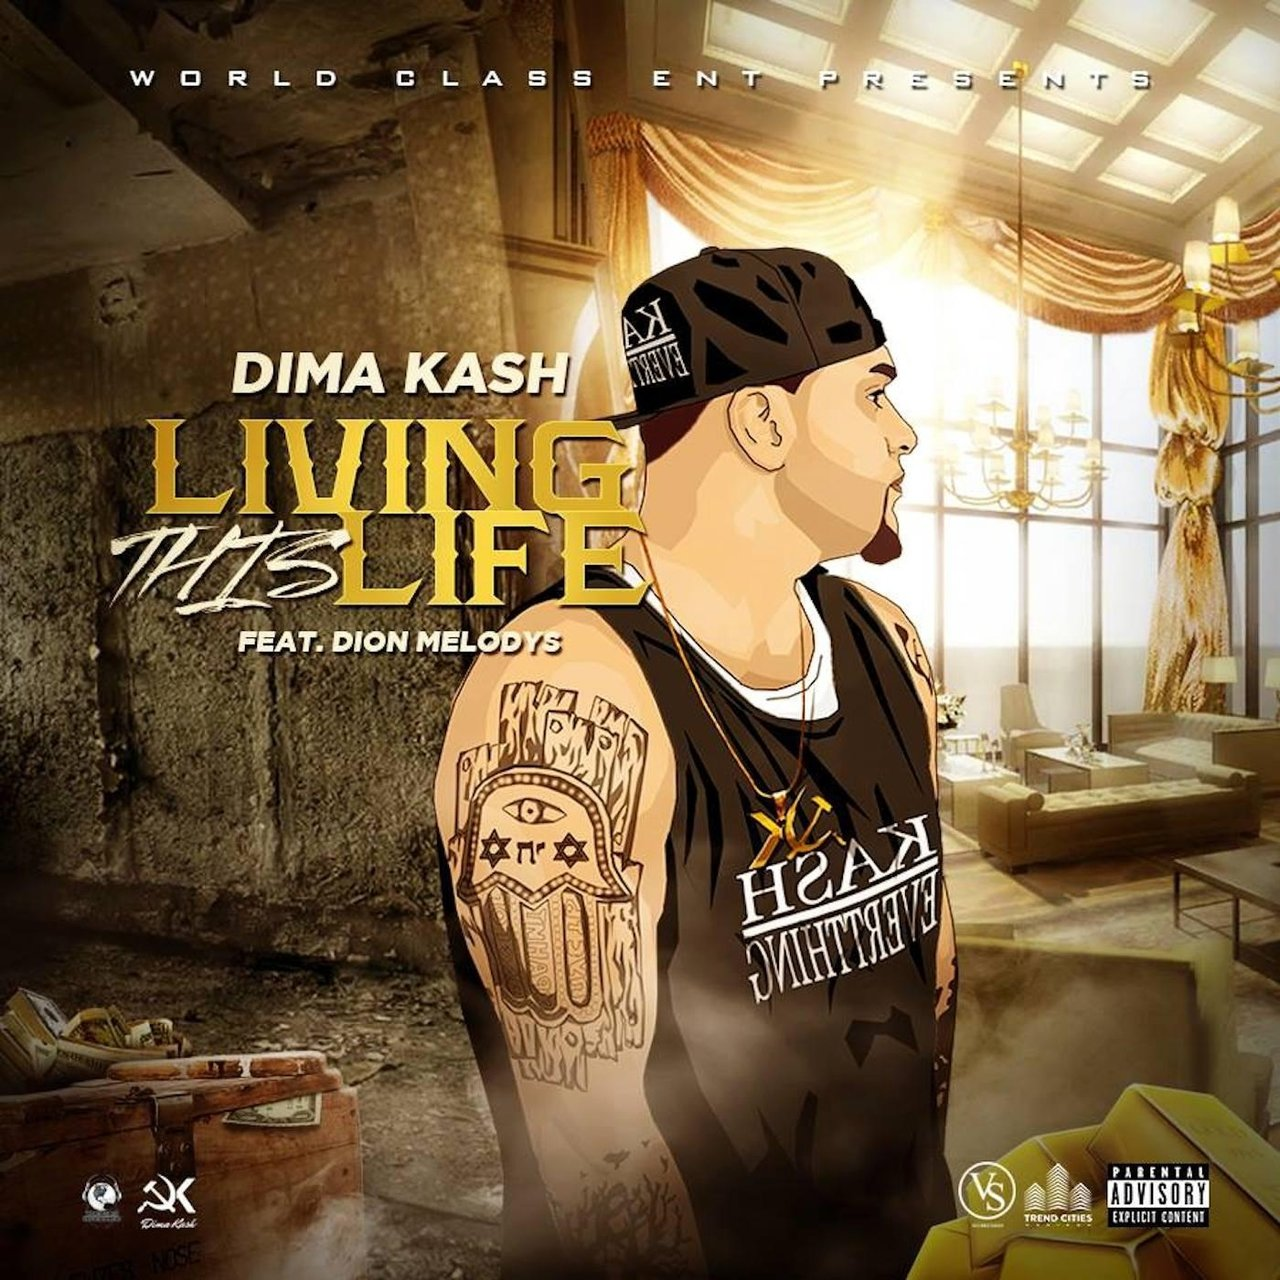 Living This Life (feat. Dion Melodys)